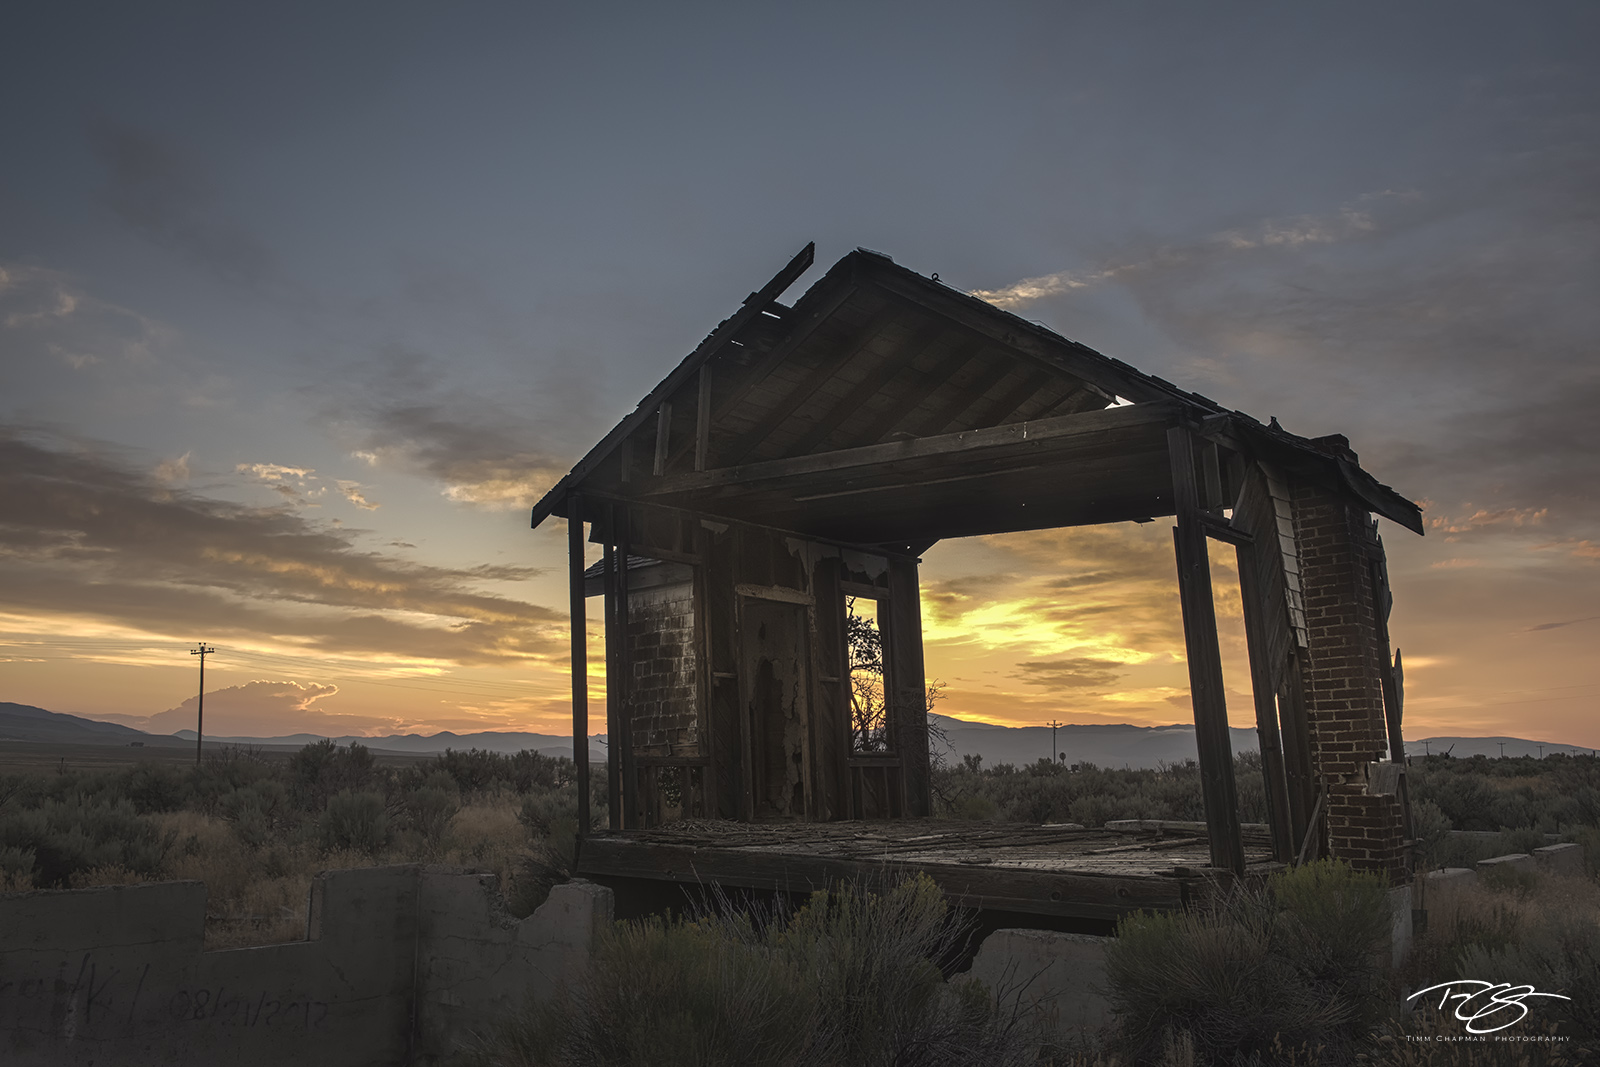 abandoned, house, home, barn, sunset, derelict, worn down, weathered, idaho, photo